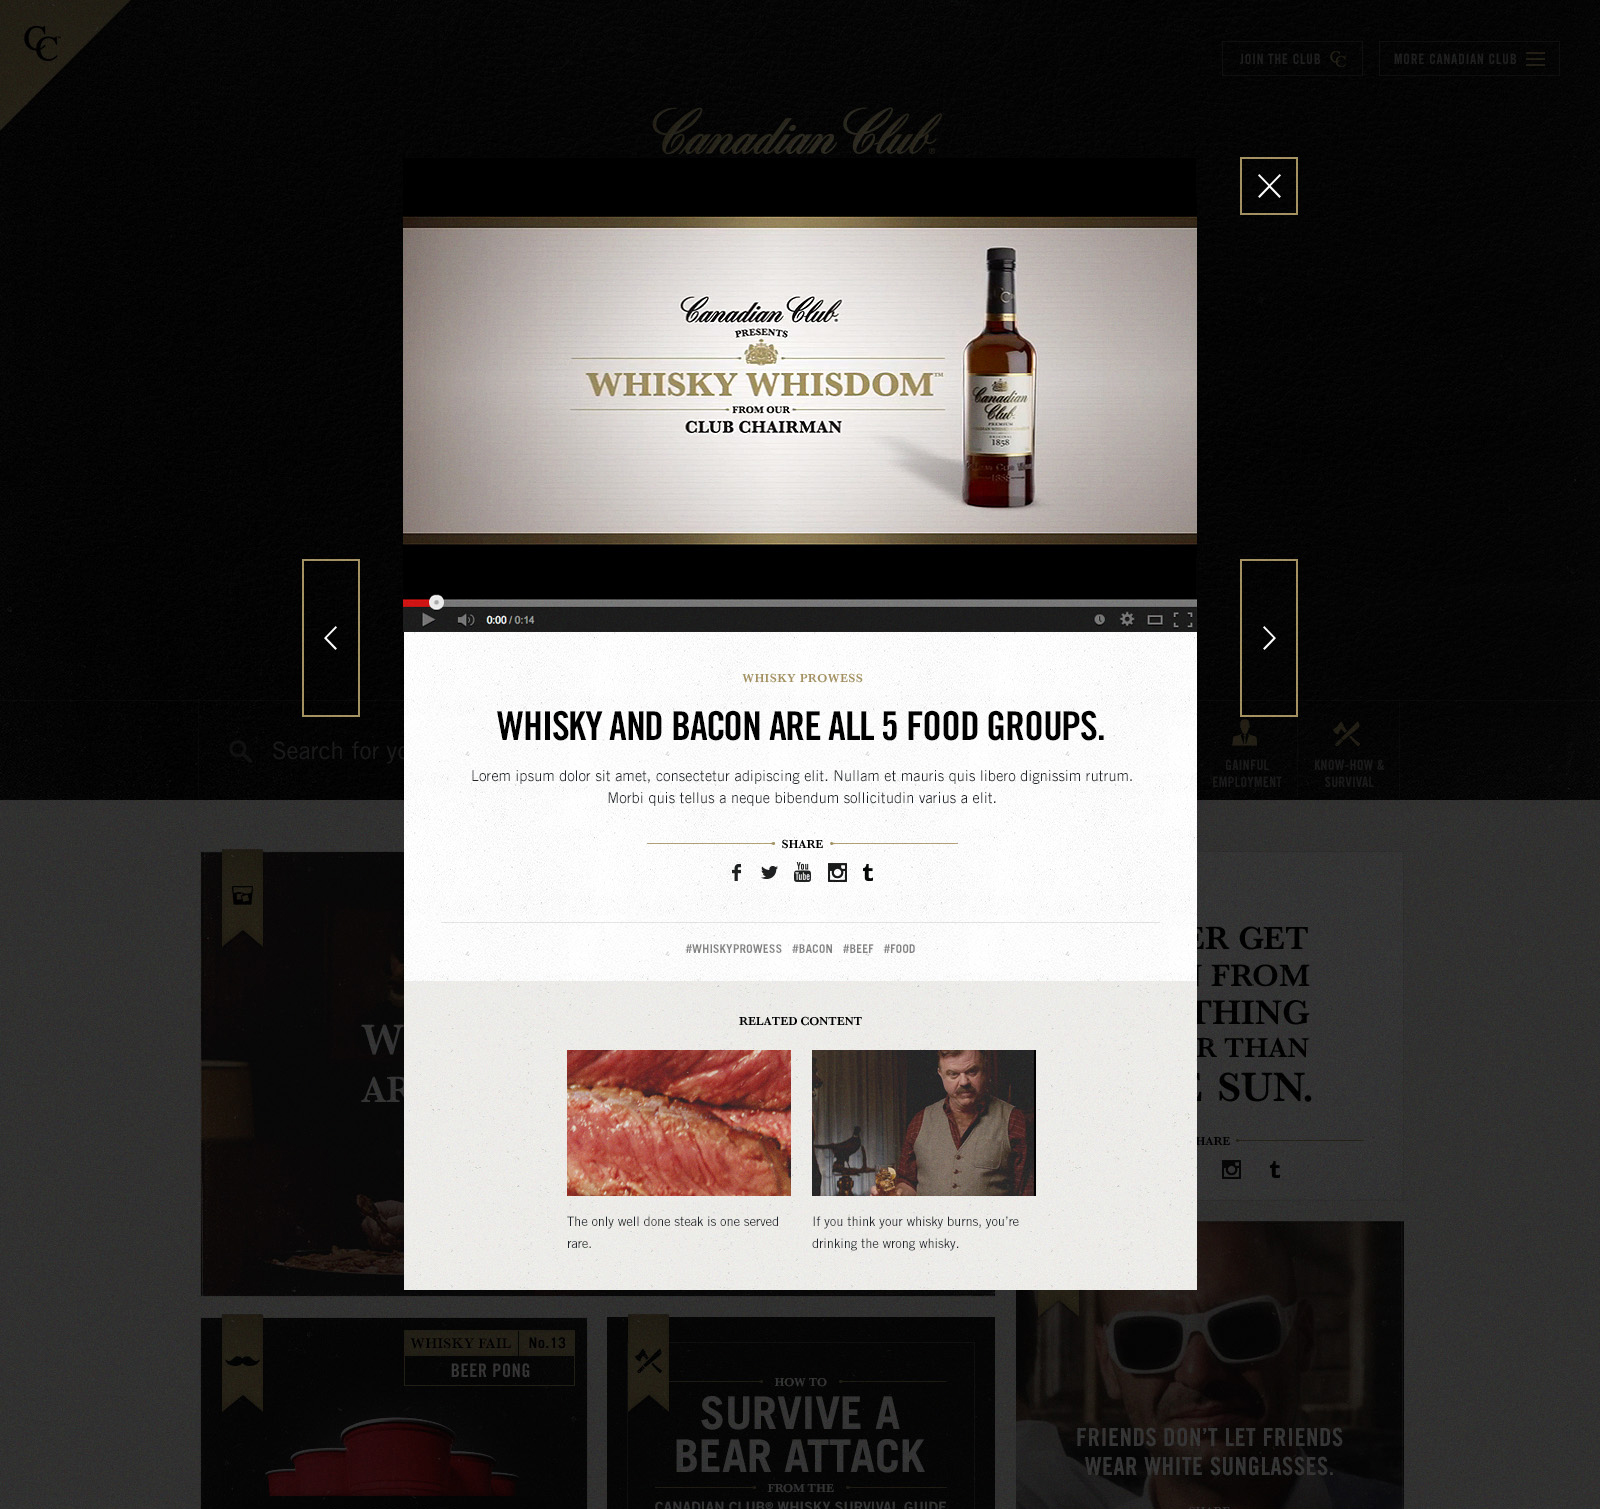 canadian club whisky marketing portfolio Canadian whisky categories were up 4% in september compared to previous year opportunities doubled their advertising budget from $25 million to $5 million between canadian club, polar ice, and lamb's rum.